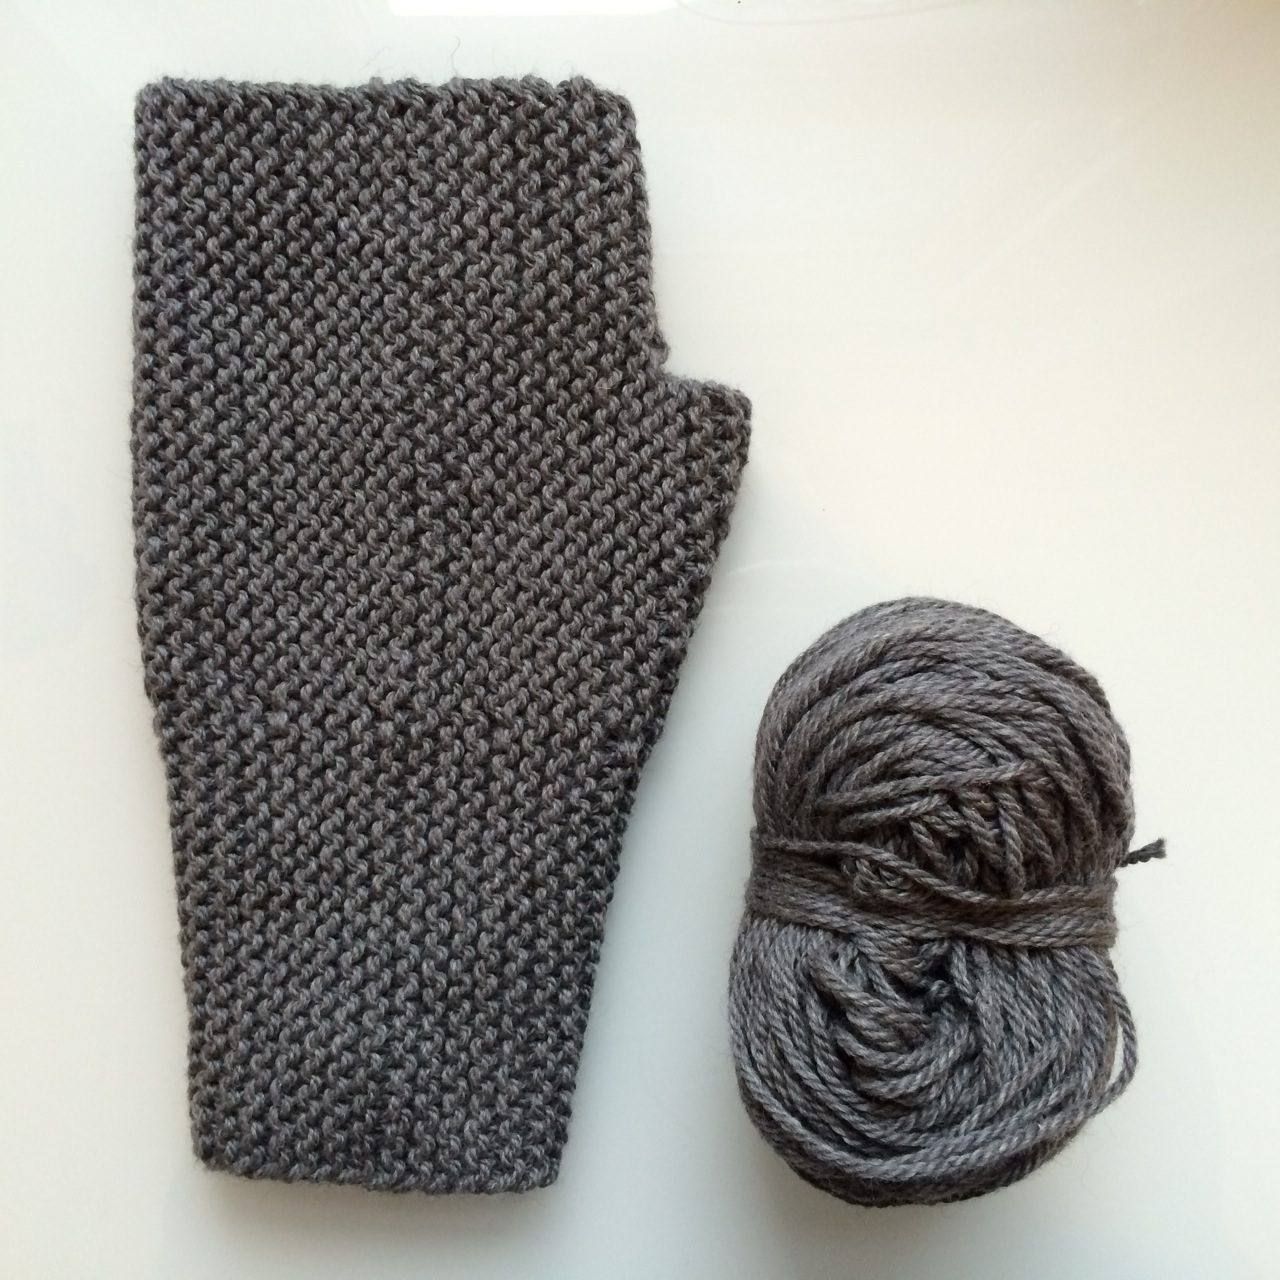 I have exactly 49.5g left of a 100g skein to knit the other mitten. It's going to be close...